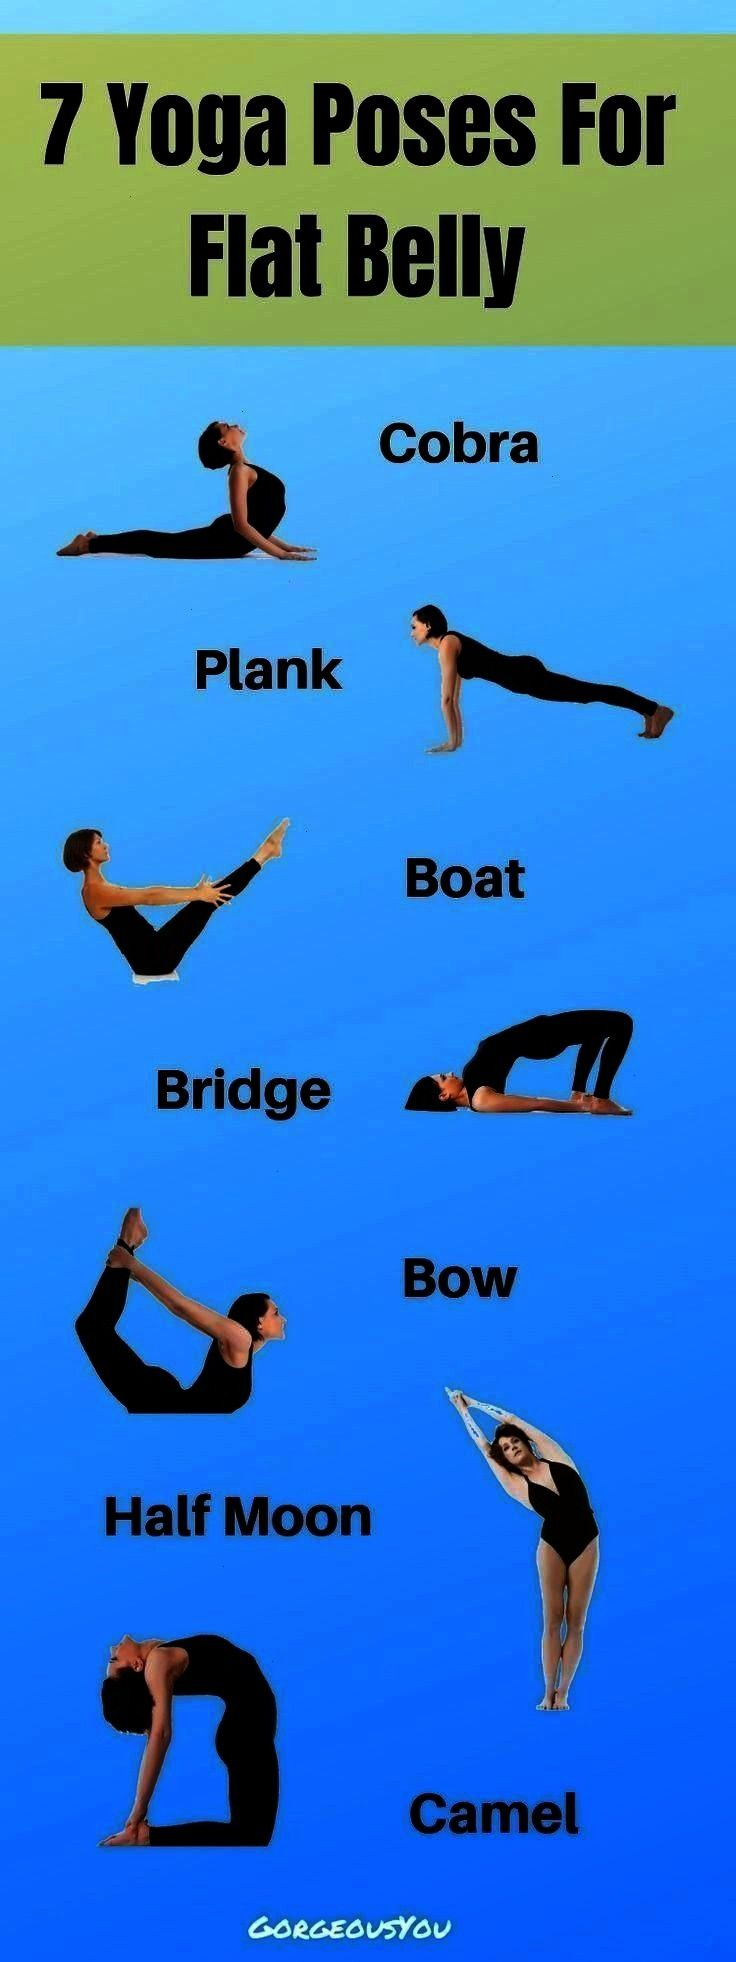 #sectionthese #sectionseven #sectionyoga #abdominal #extremely #zenseven #areyoga #helpful #tighten...